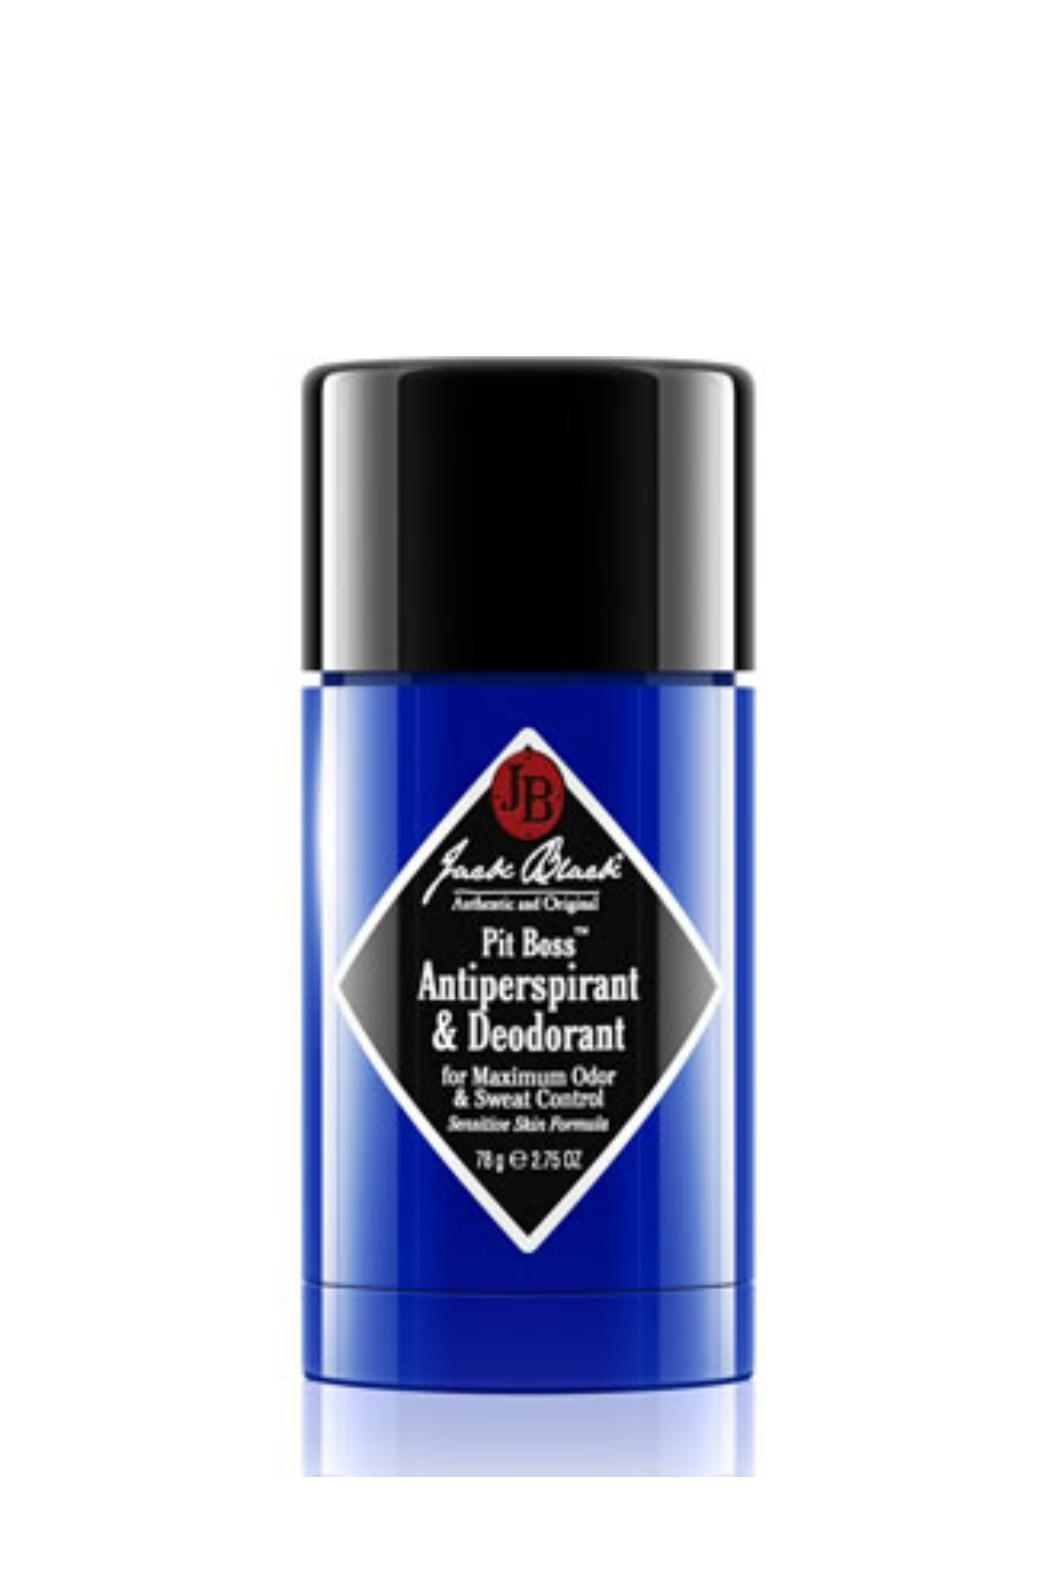 Jack Black Pit Boss Antiperspirant & Deodorant Sensitive Skin Formula - Main Image